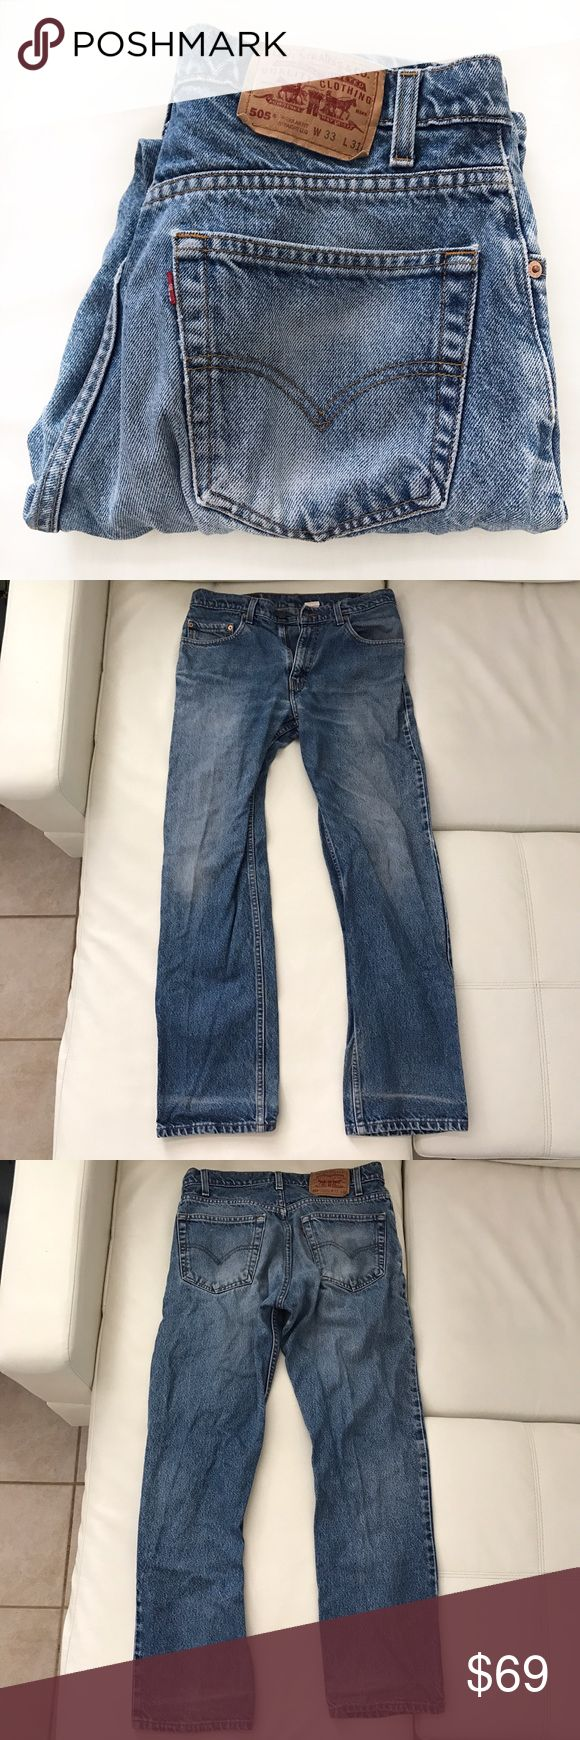 "LEVI'S 505 jeans medium wash high waist size 33 Classic jeans in a vintage wash. Great condition.  👖Waist 33"" 👖Rise 11"" 👖Inseam 30"" Levi's Jeans Straight Leg"